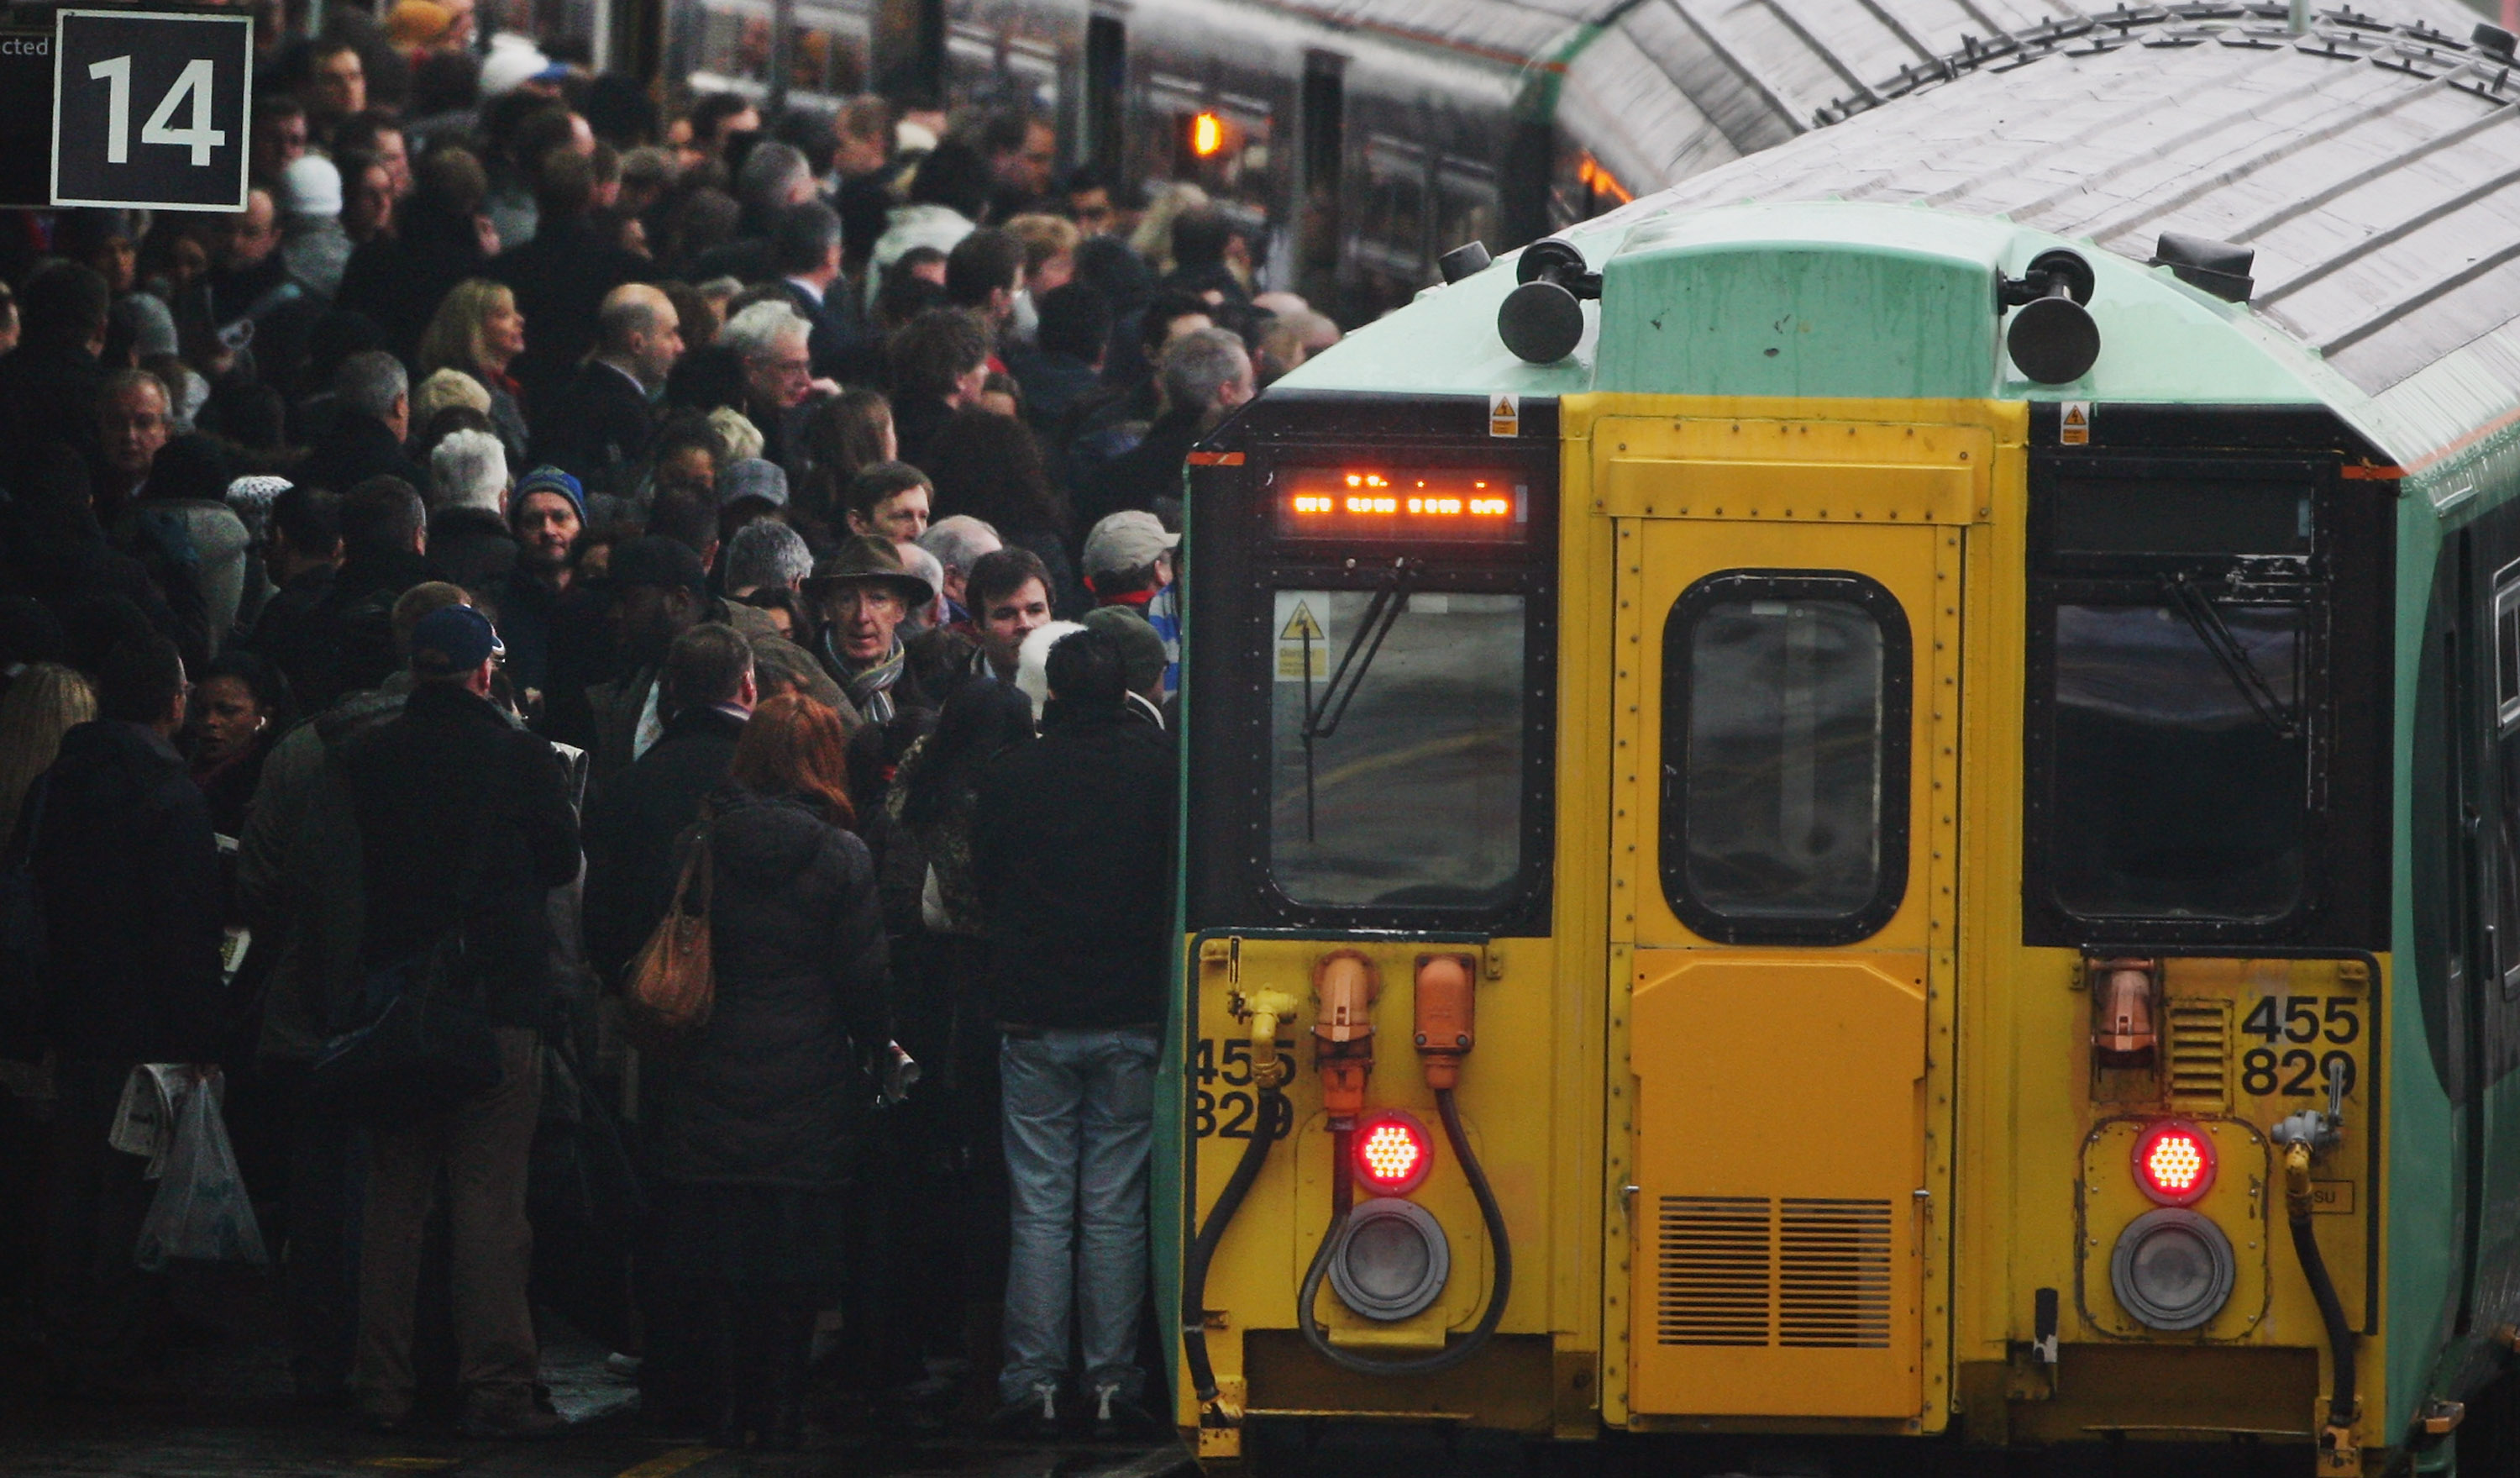 Commuter Trains Are Carrying 40 Per Cent Above Their Passeneger Capacity